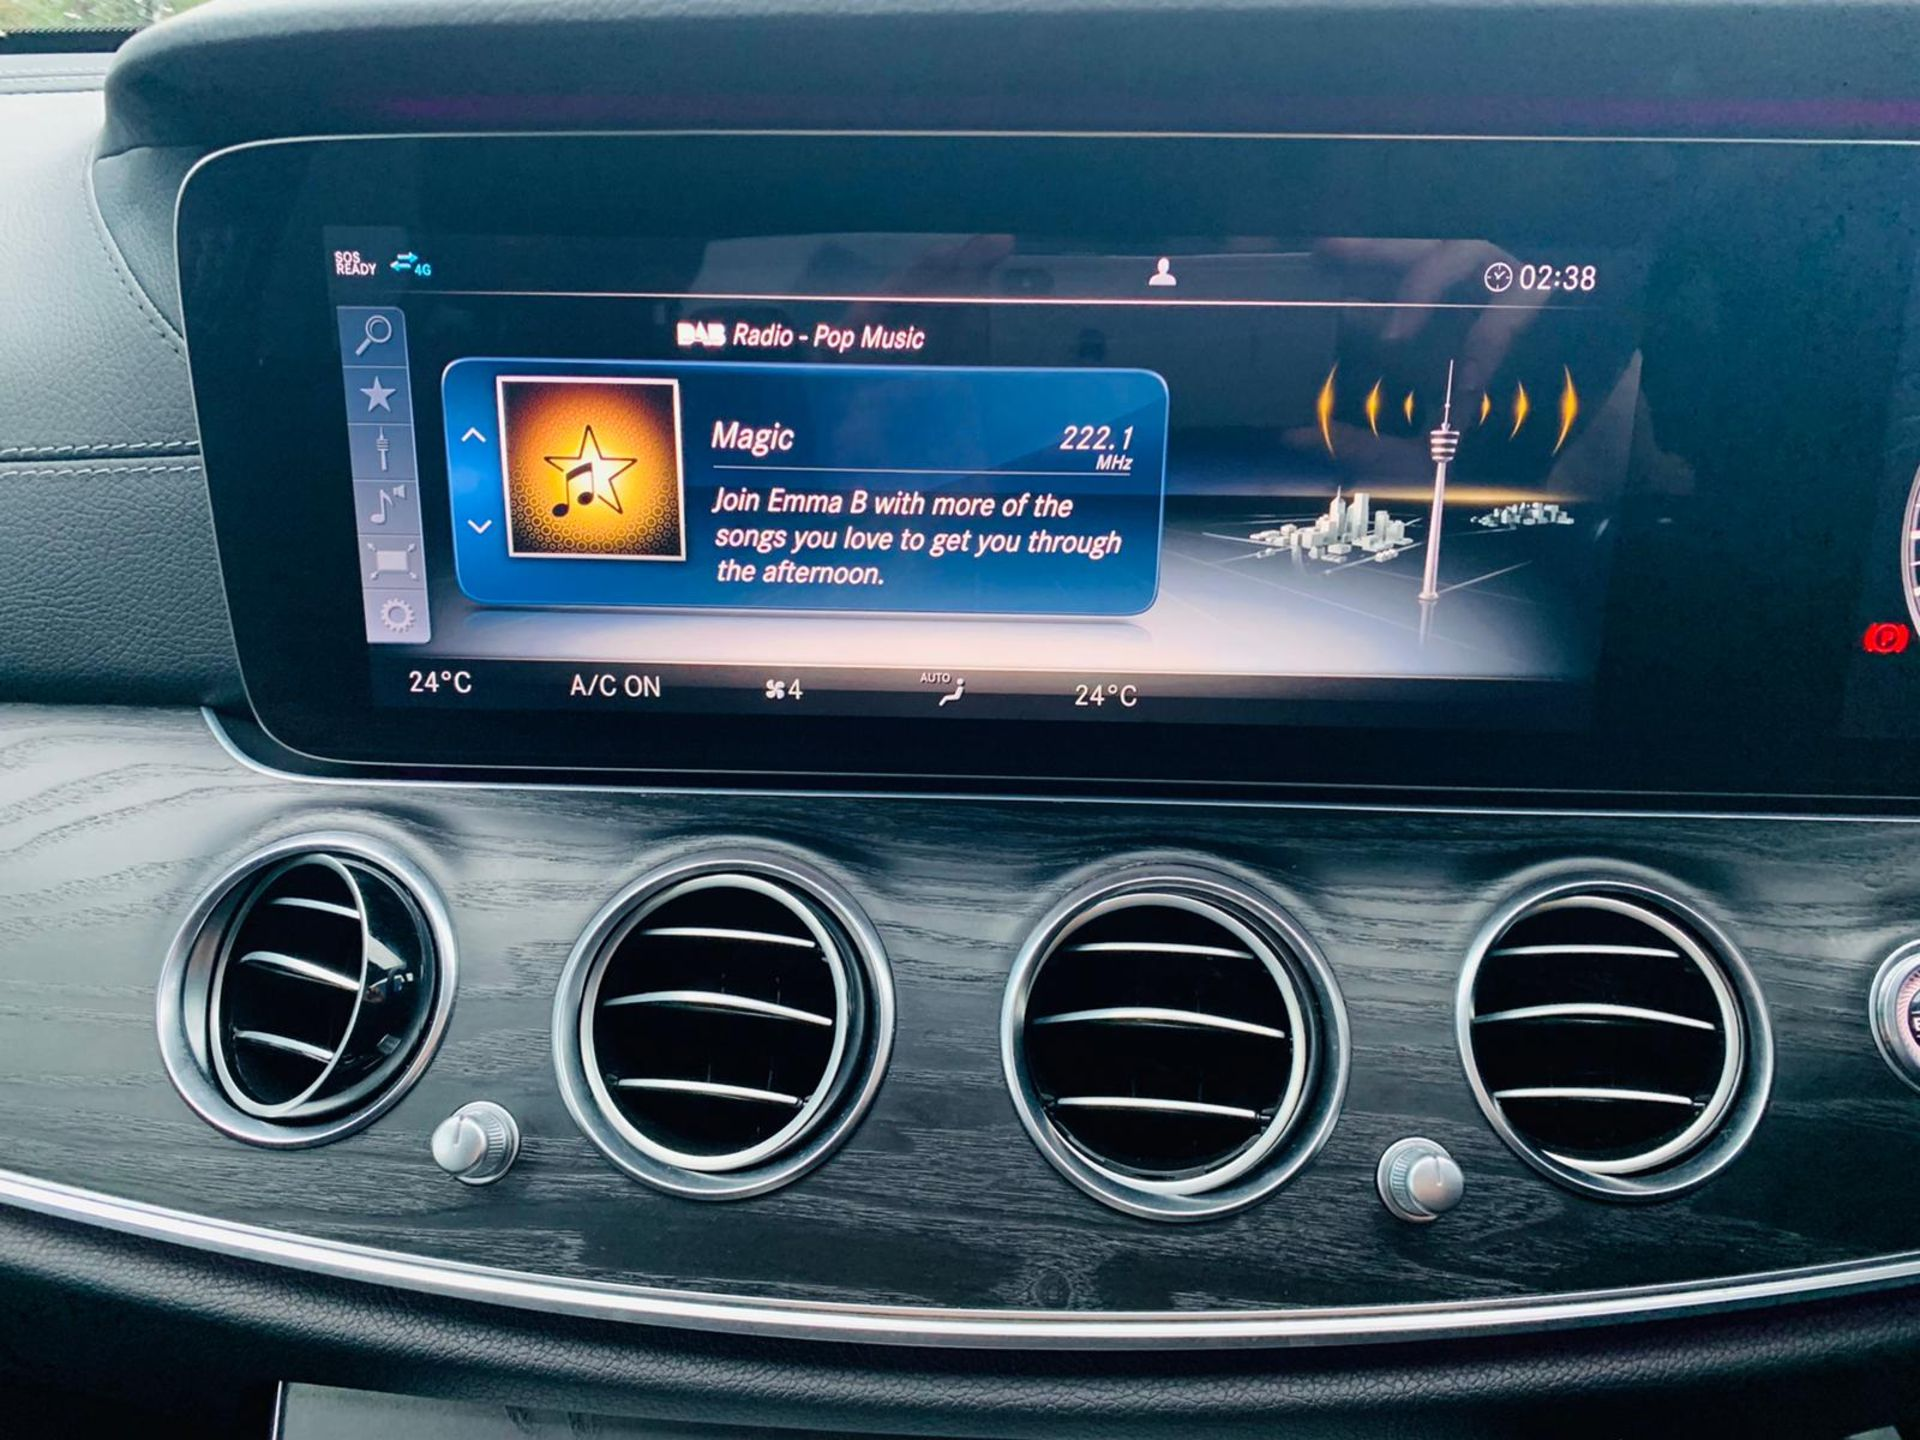 (Reserve Met)Mercedes E220d AMG Line Auto 9G Tronic - 2019 Reg - Reversing Cam - 1 Owner From New - Image 24 of 30